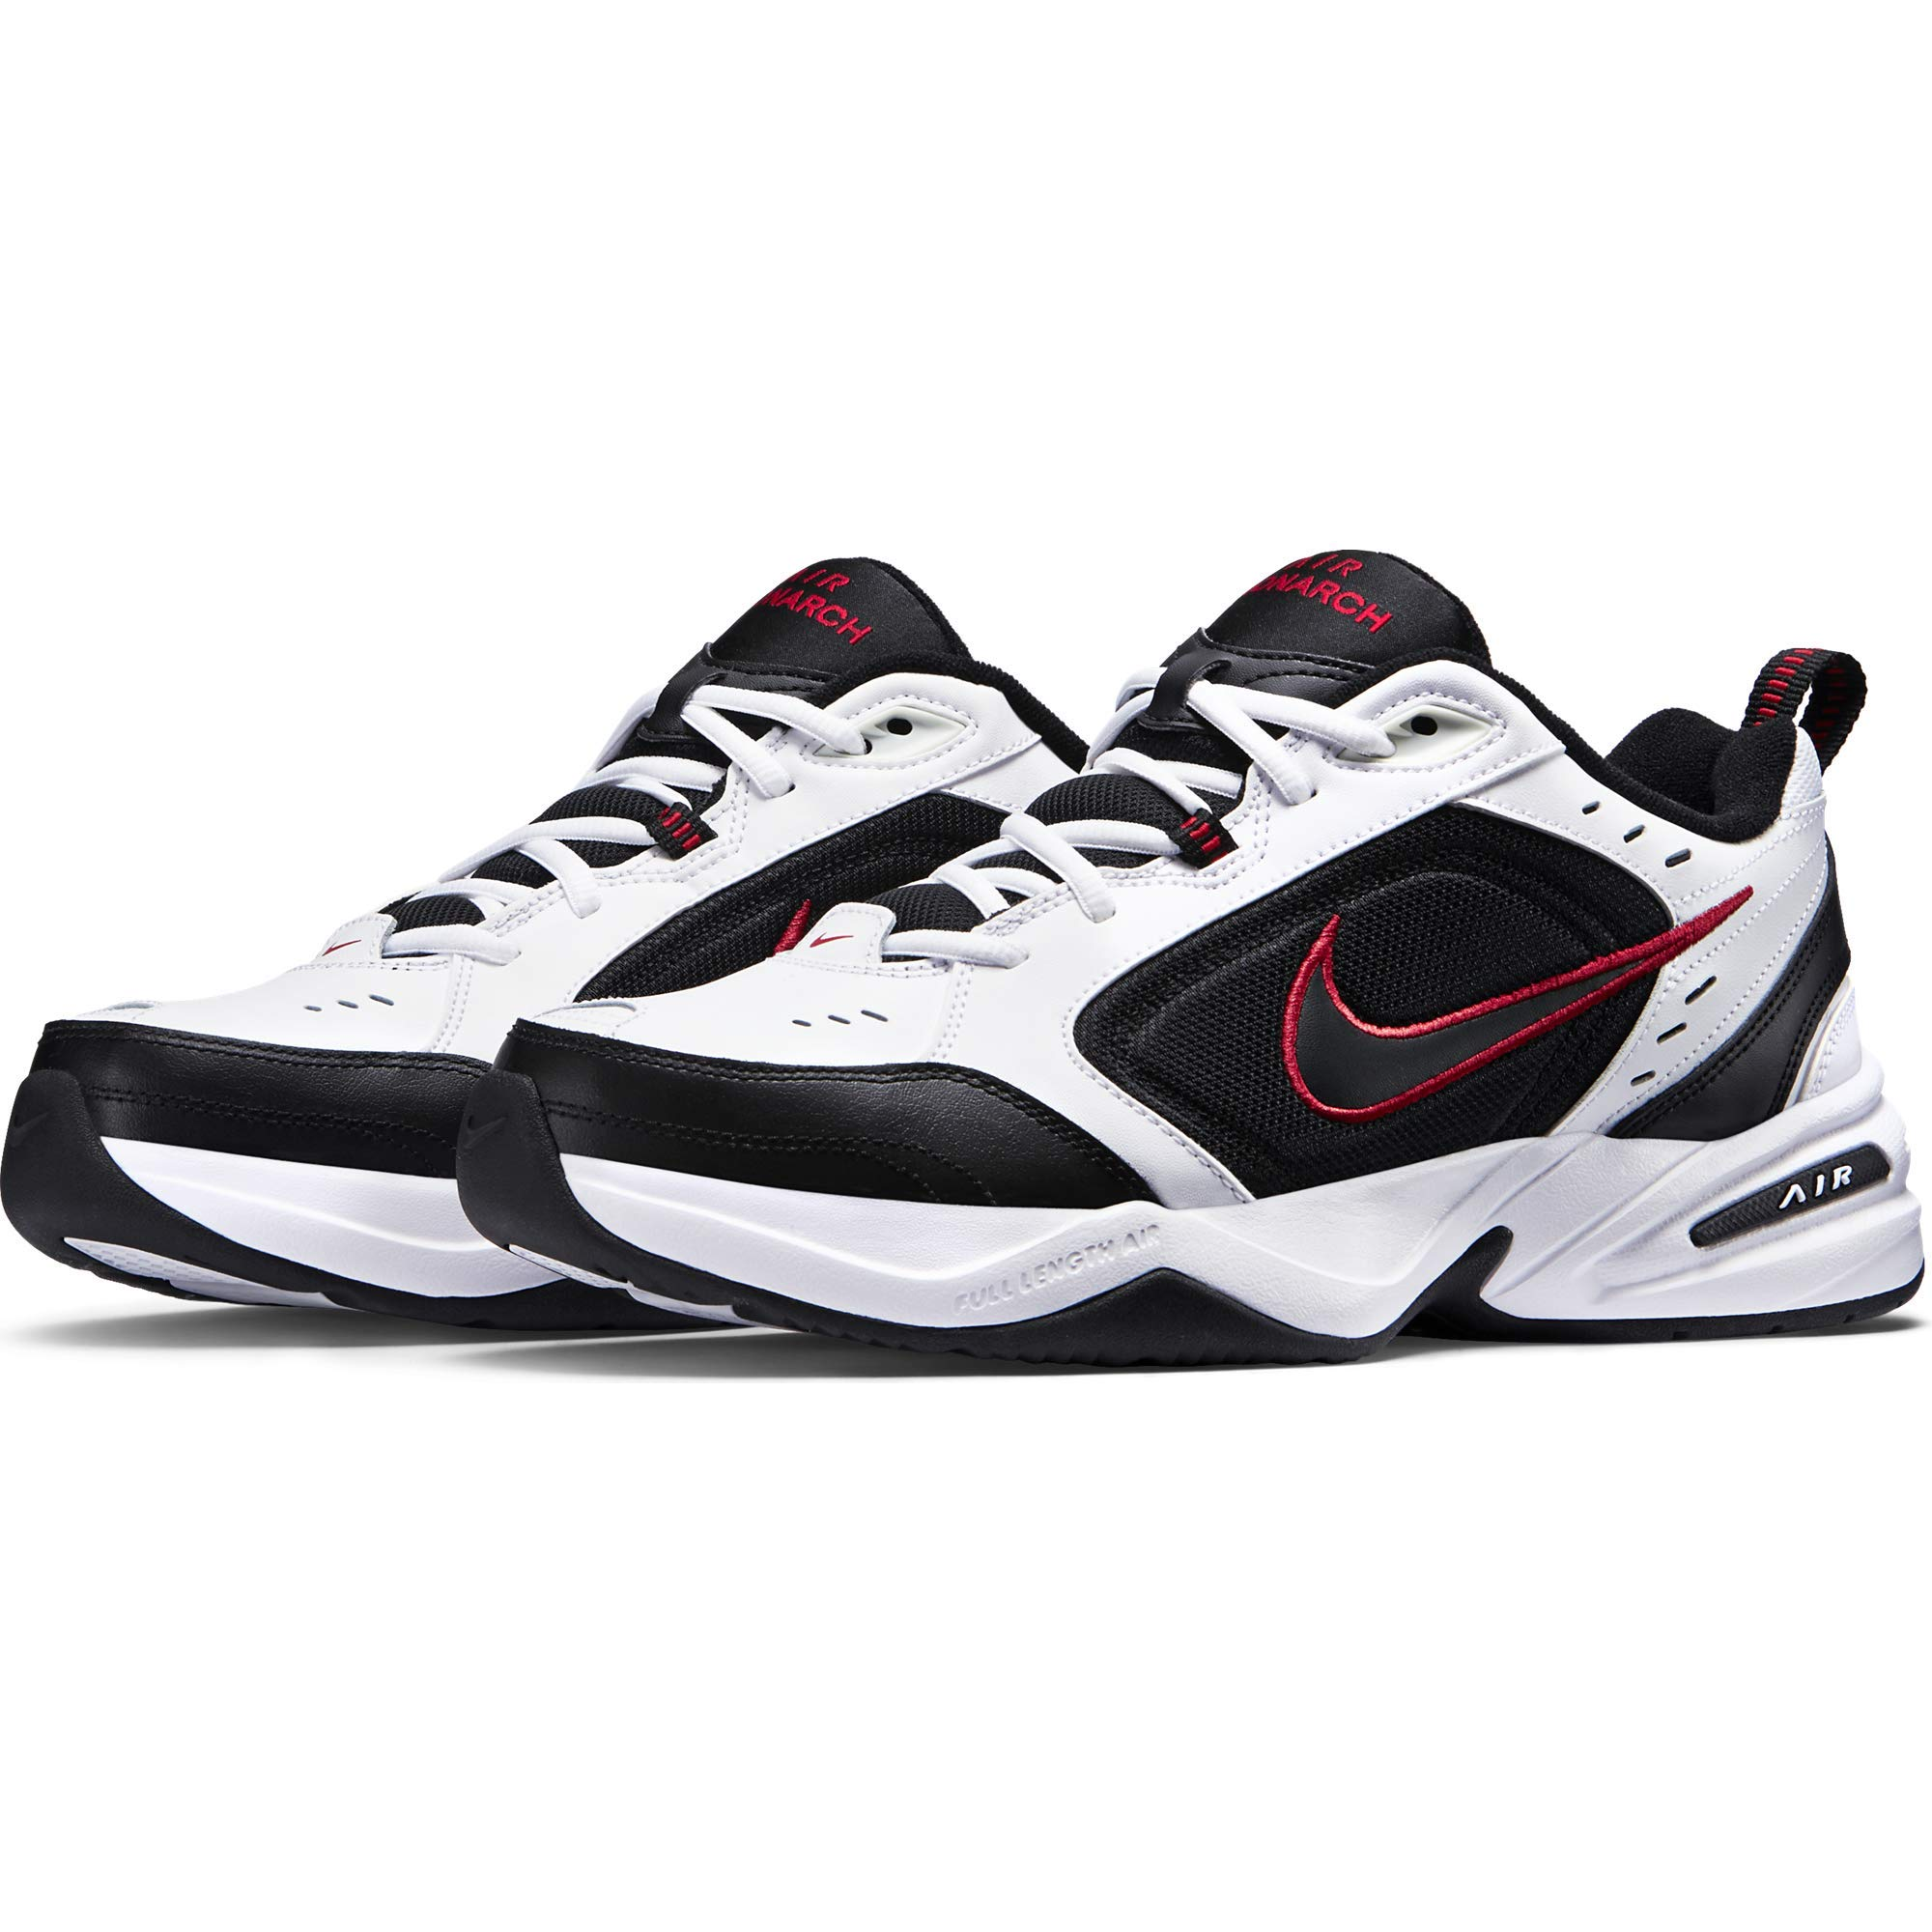 Nike Men's Air Monarch IV Cross Trainer, White/Black, 10.5 4E US by Nike